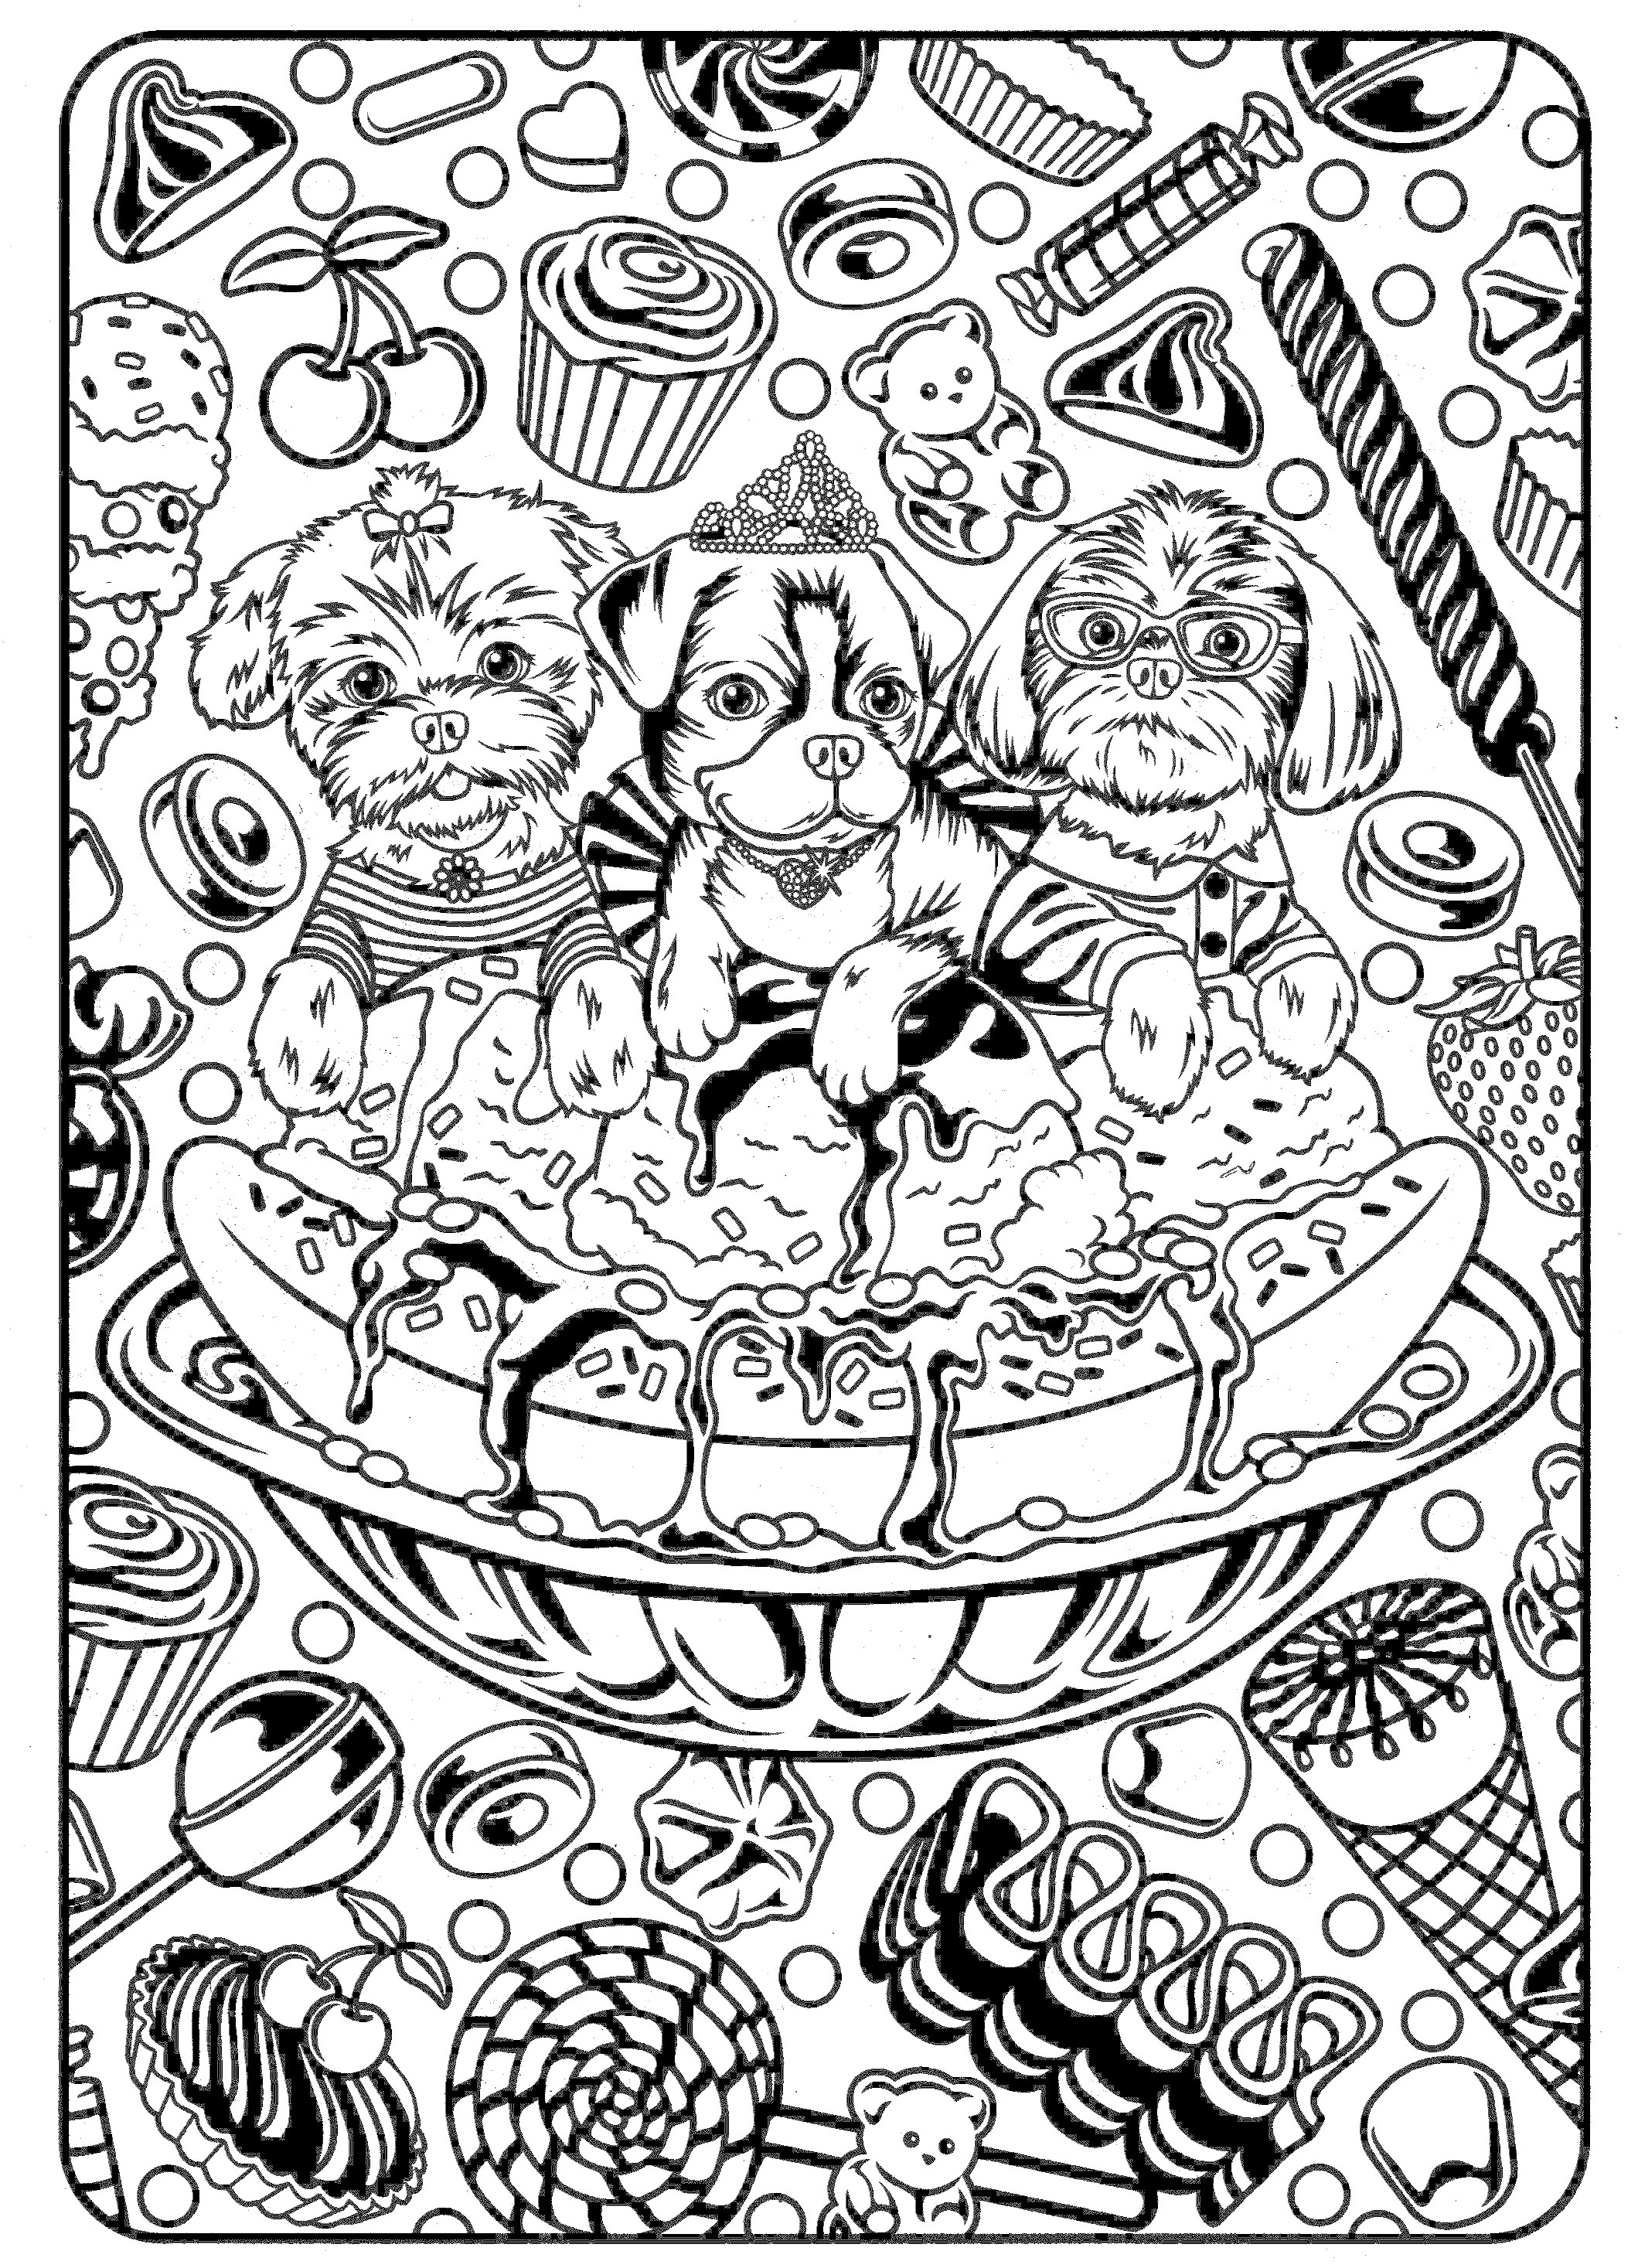 color sheets printable hard coloring pages for adults best coloring pages for kids sheets printable color